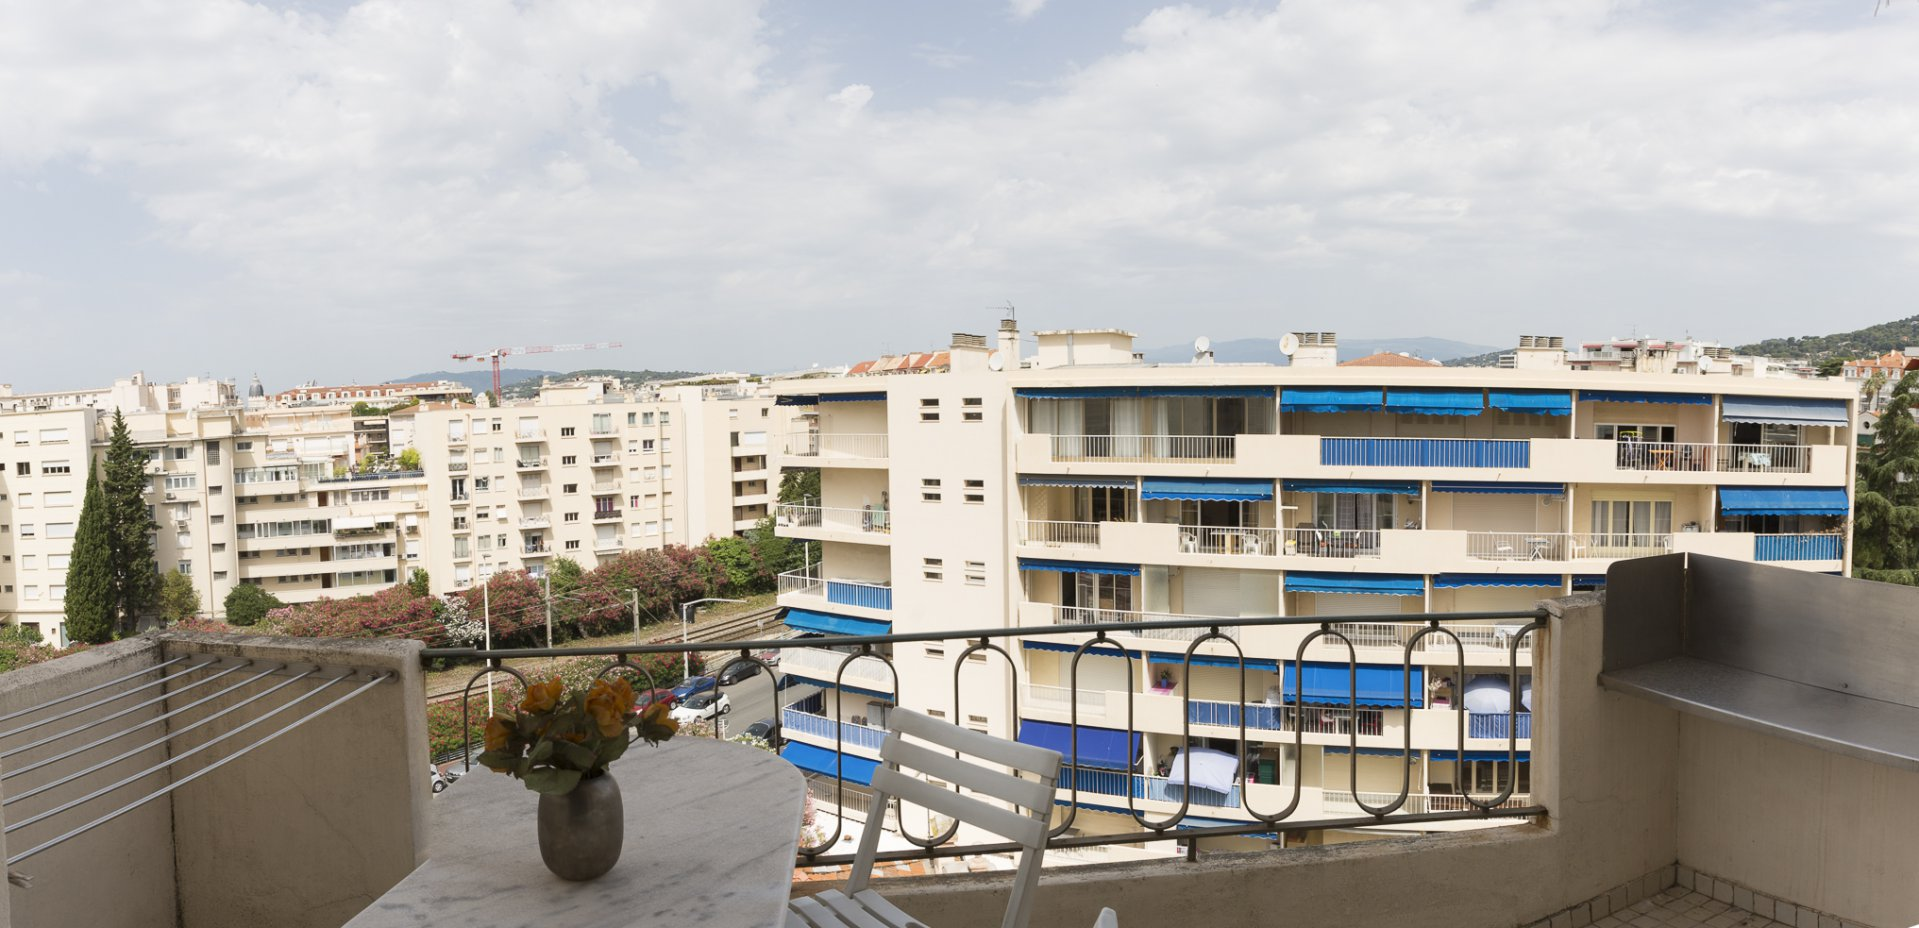 Cannes Basse-Californie : 2 bed with terrace and open views near the Croisette